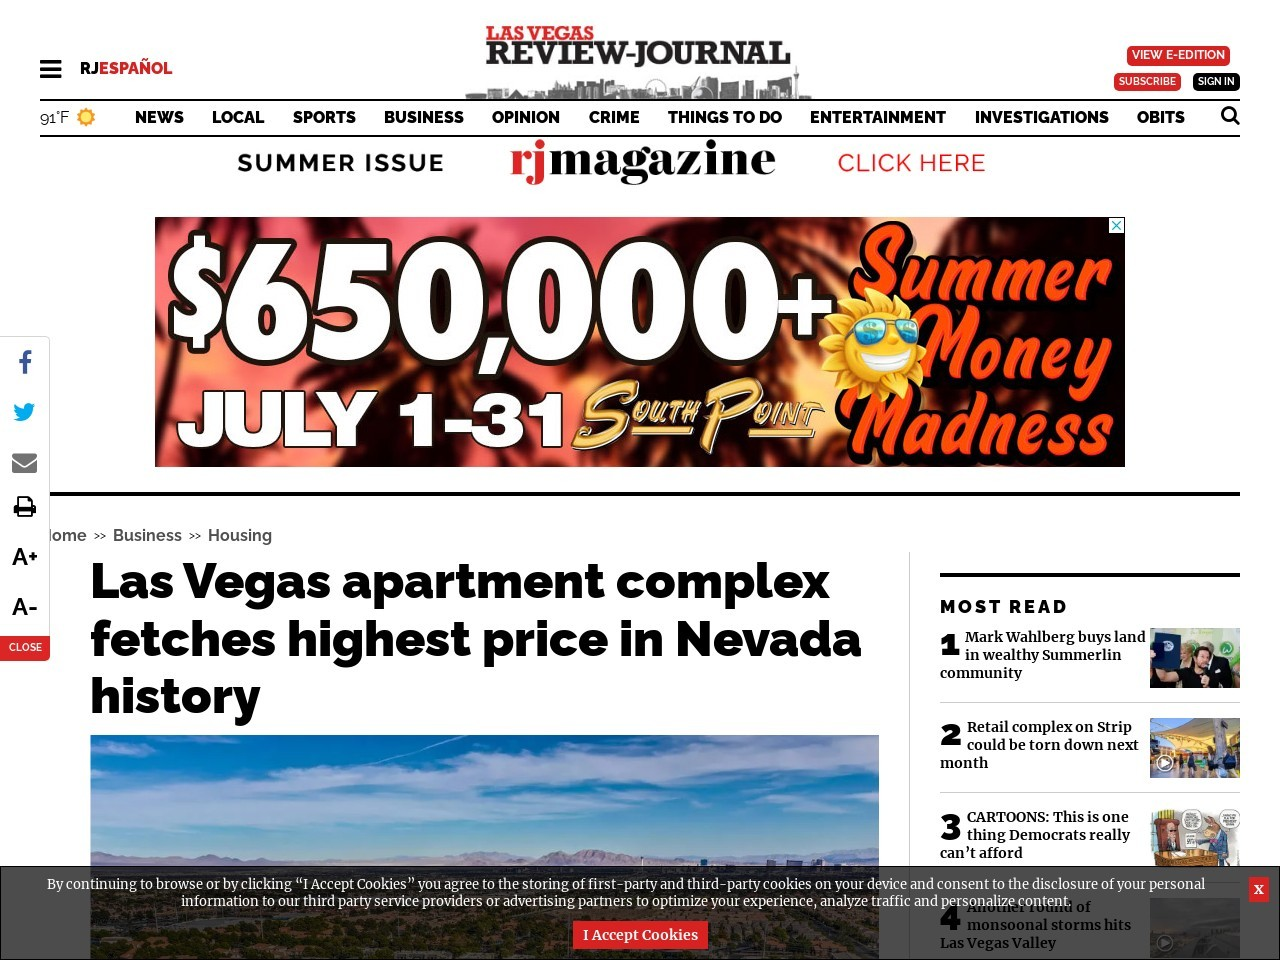 Las Vegas apartment complex fetches highest price in Nevada history